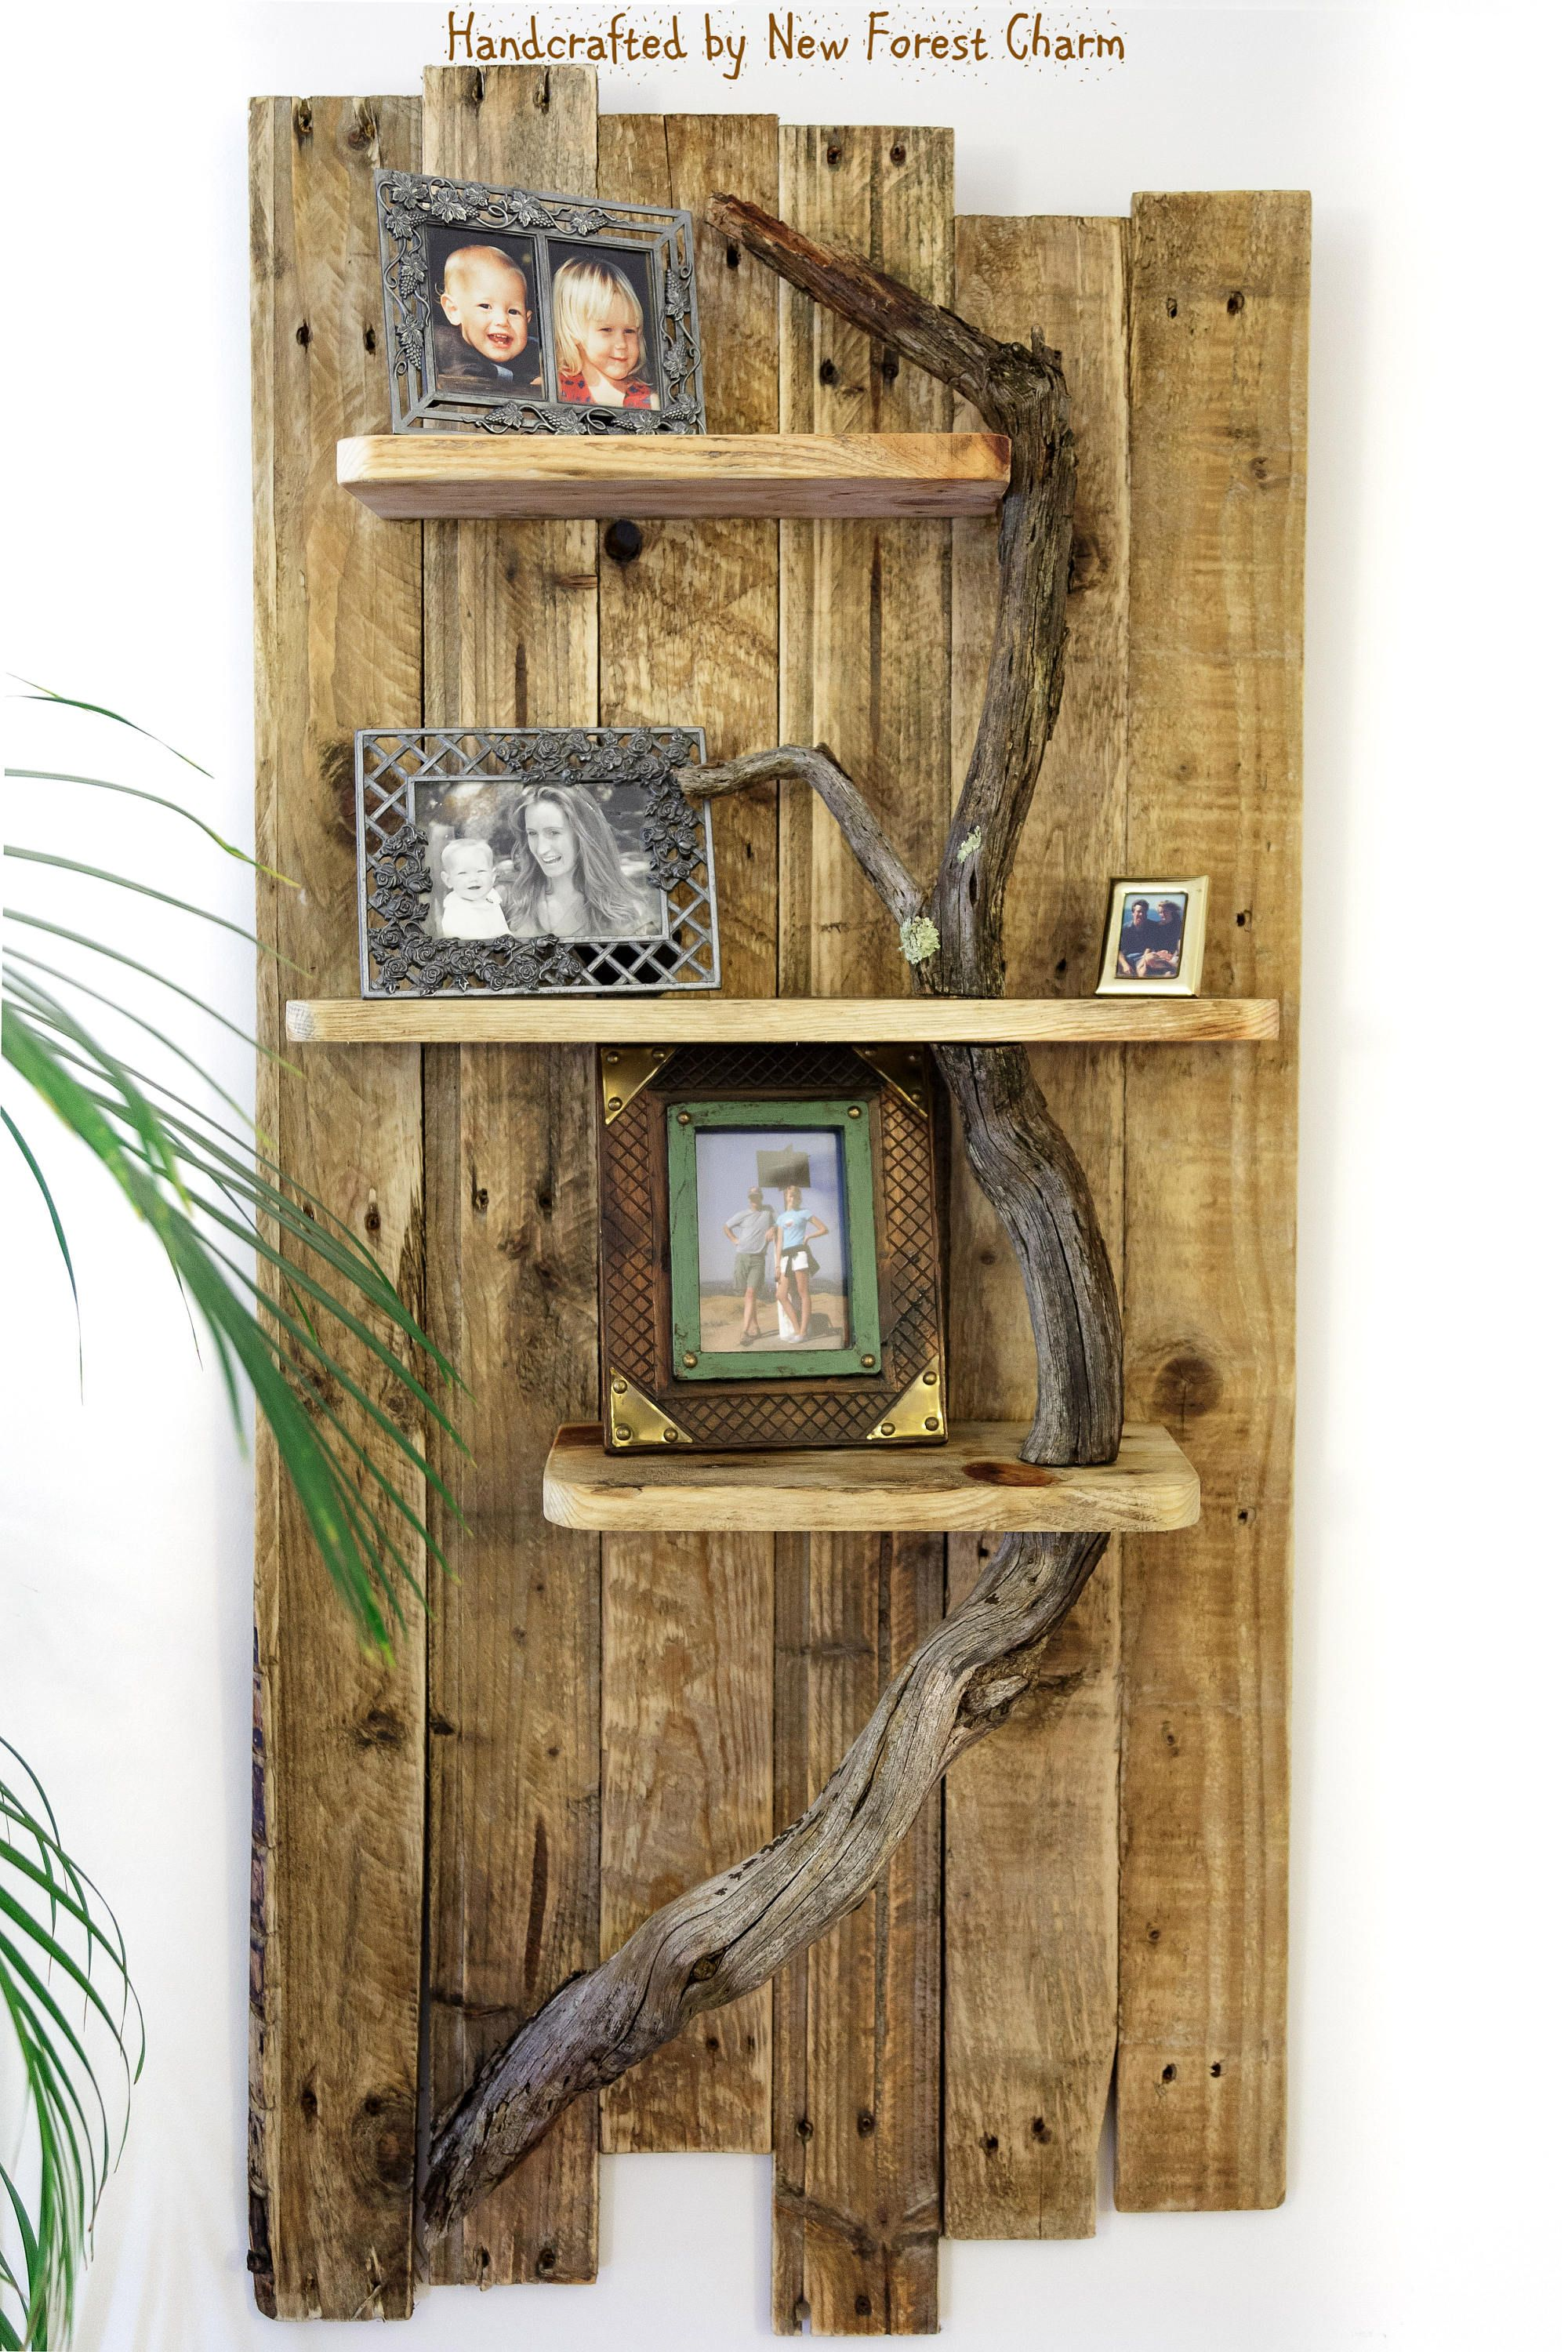 handmade wooden home decor rustic home decor wall art reclaimed pallet shelves wooden home Rustic Wall Shelf Wall Art Reclaimed Retro Pallet Wood Home Decor Shelf Wall  Display Tree Branch by NewForestCharm on Etsy